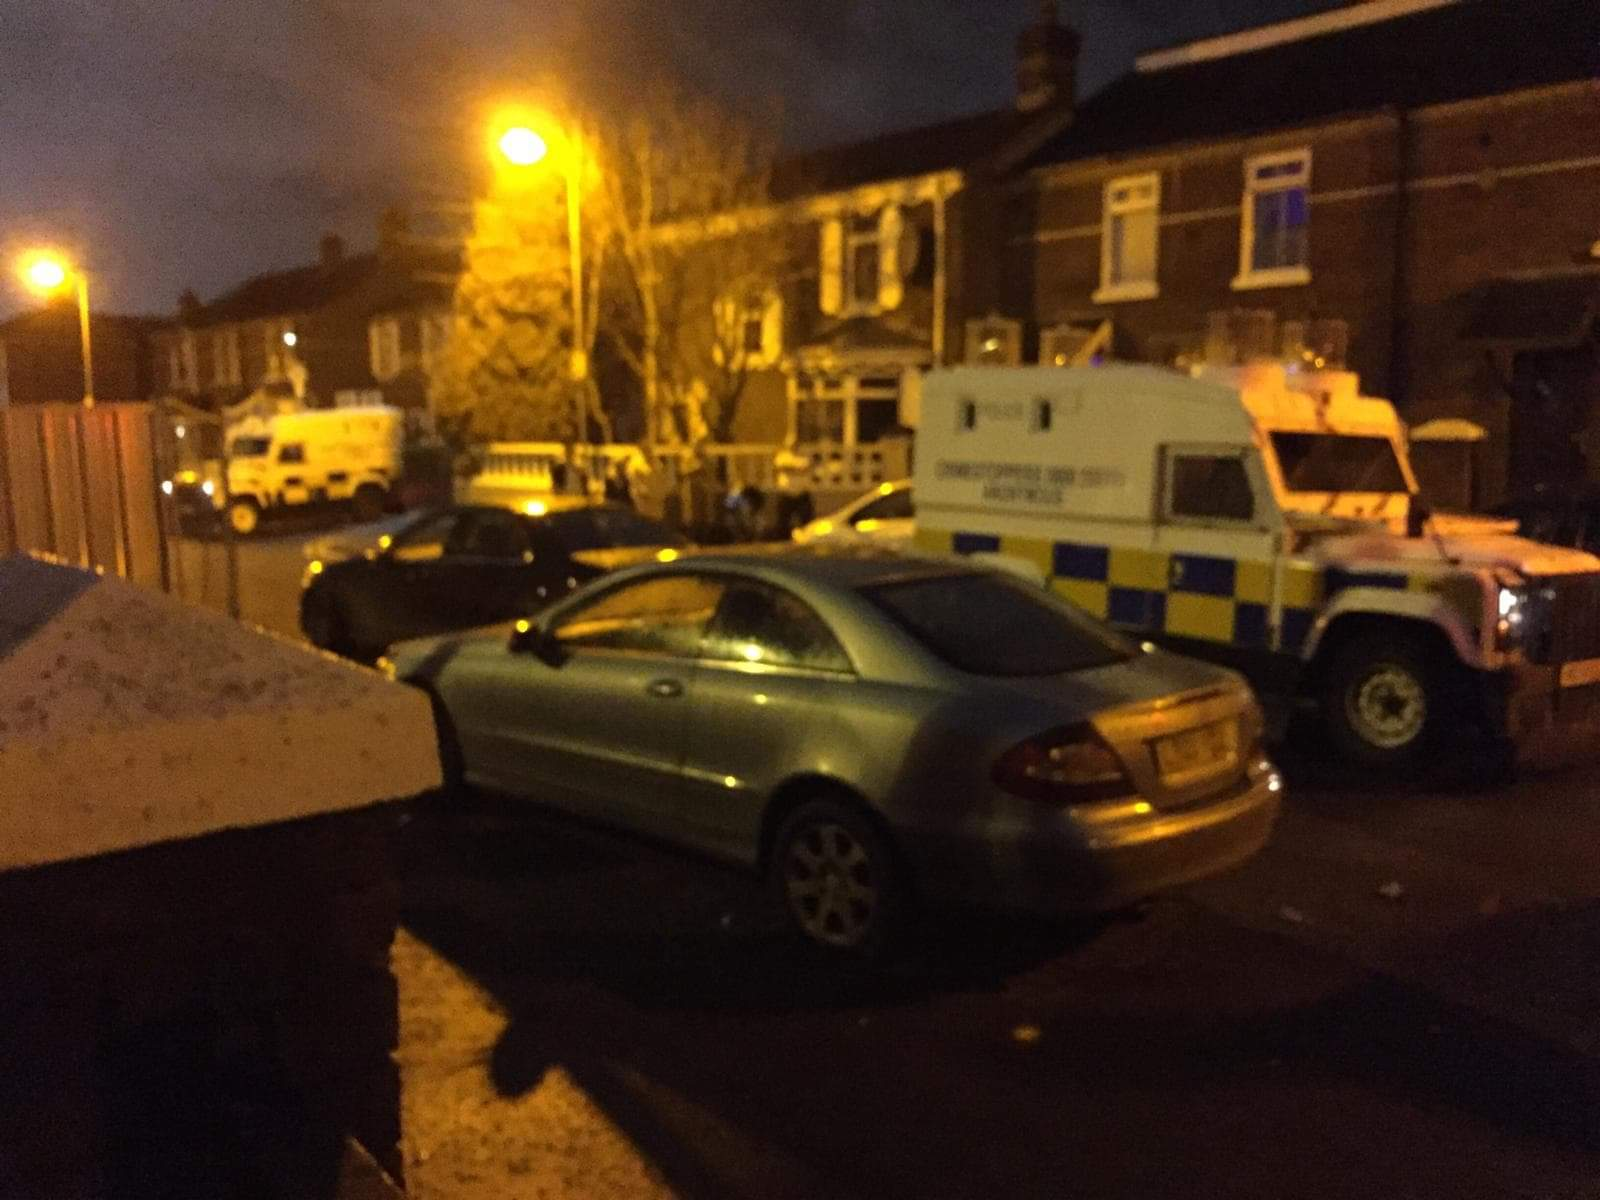 QUESTIONS: Police Land Rovers at the wake house on Cullingtree Road